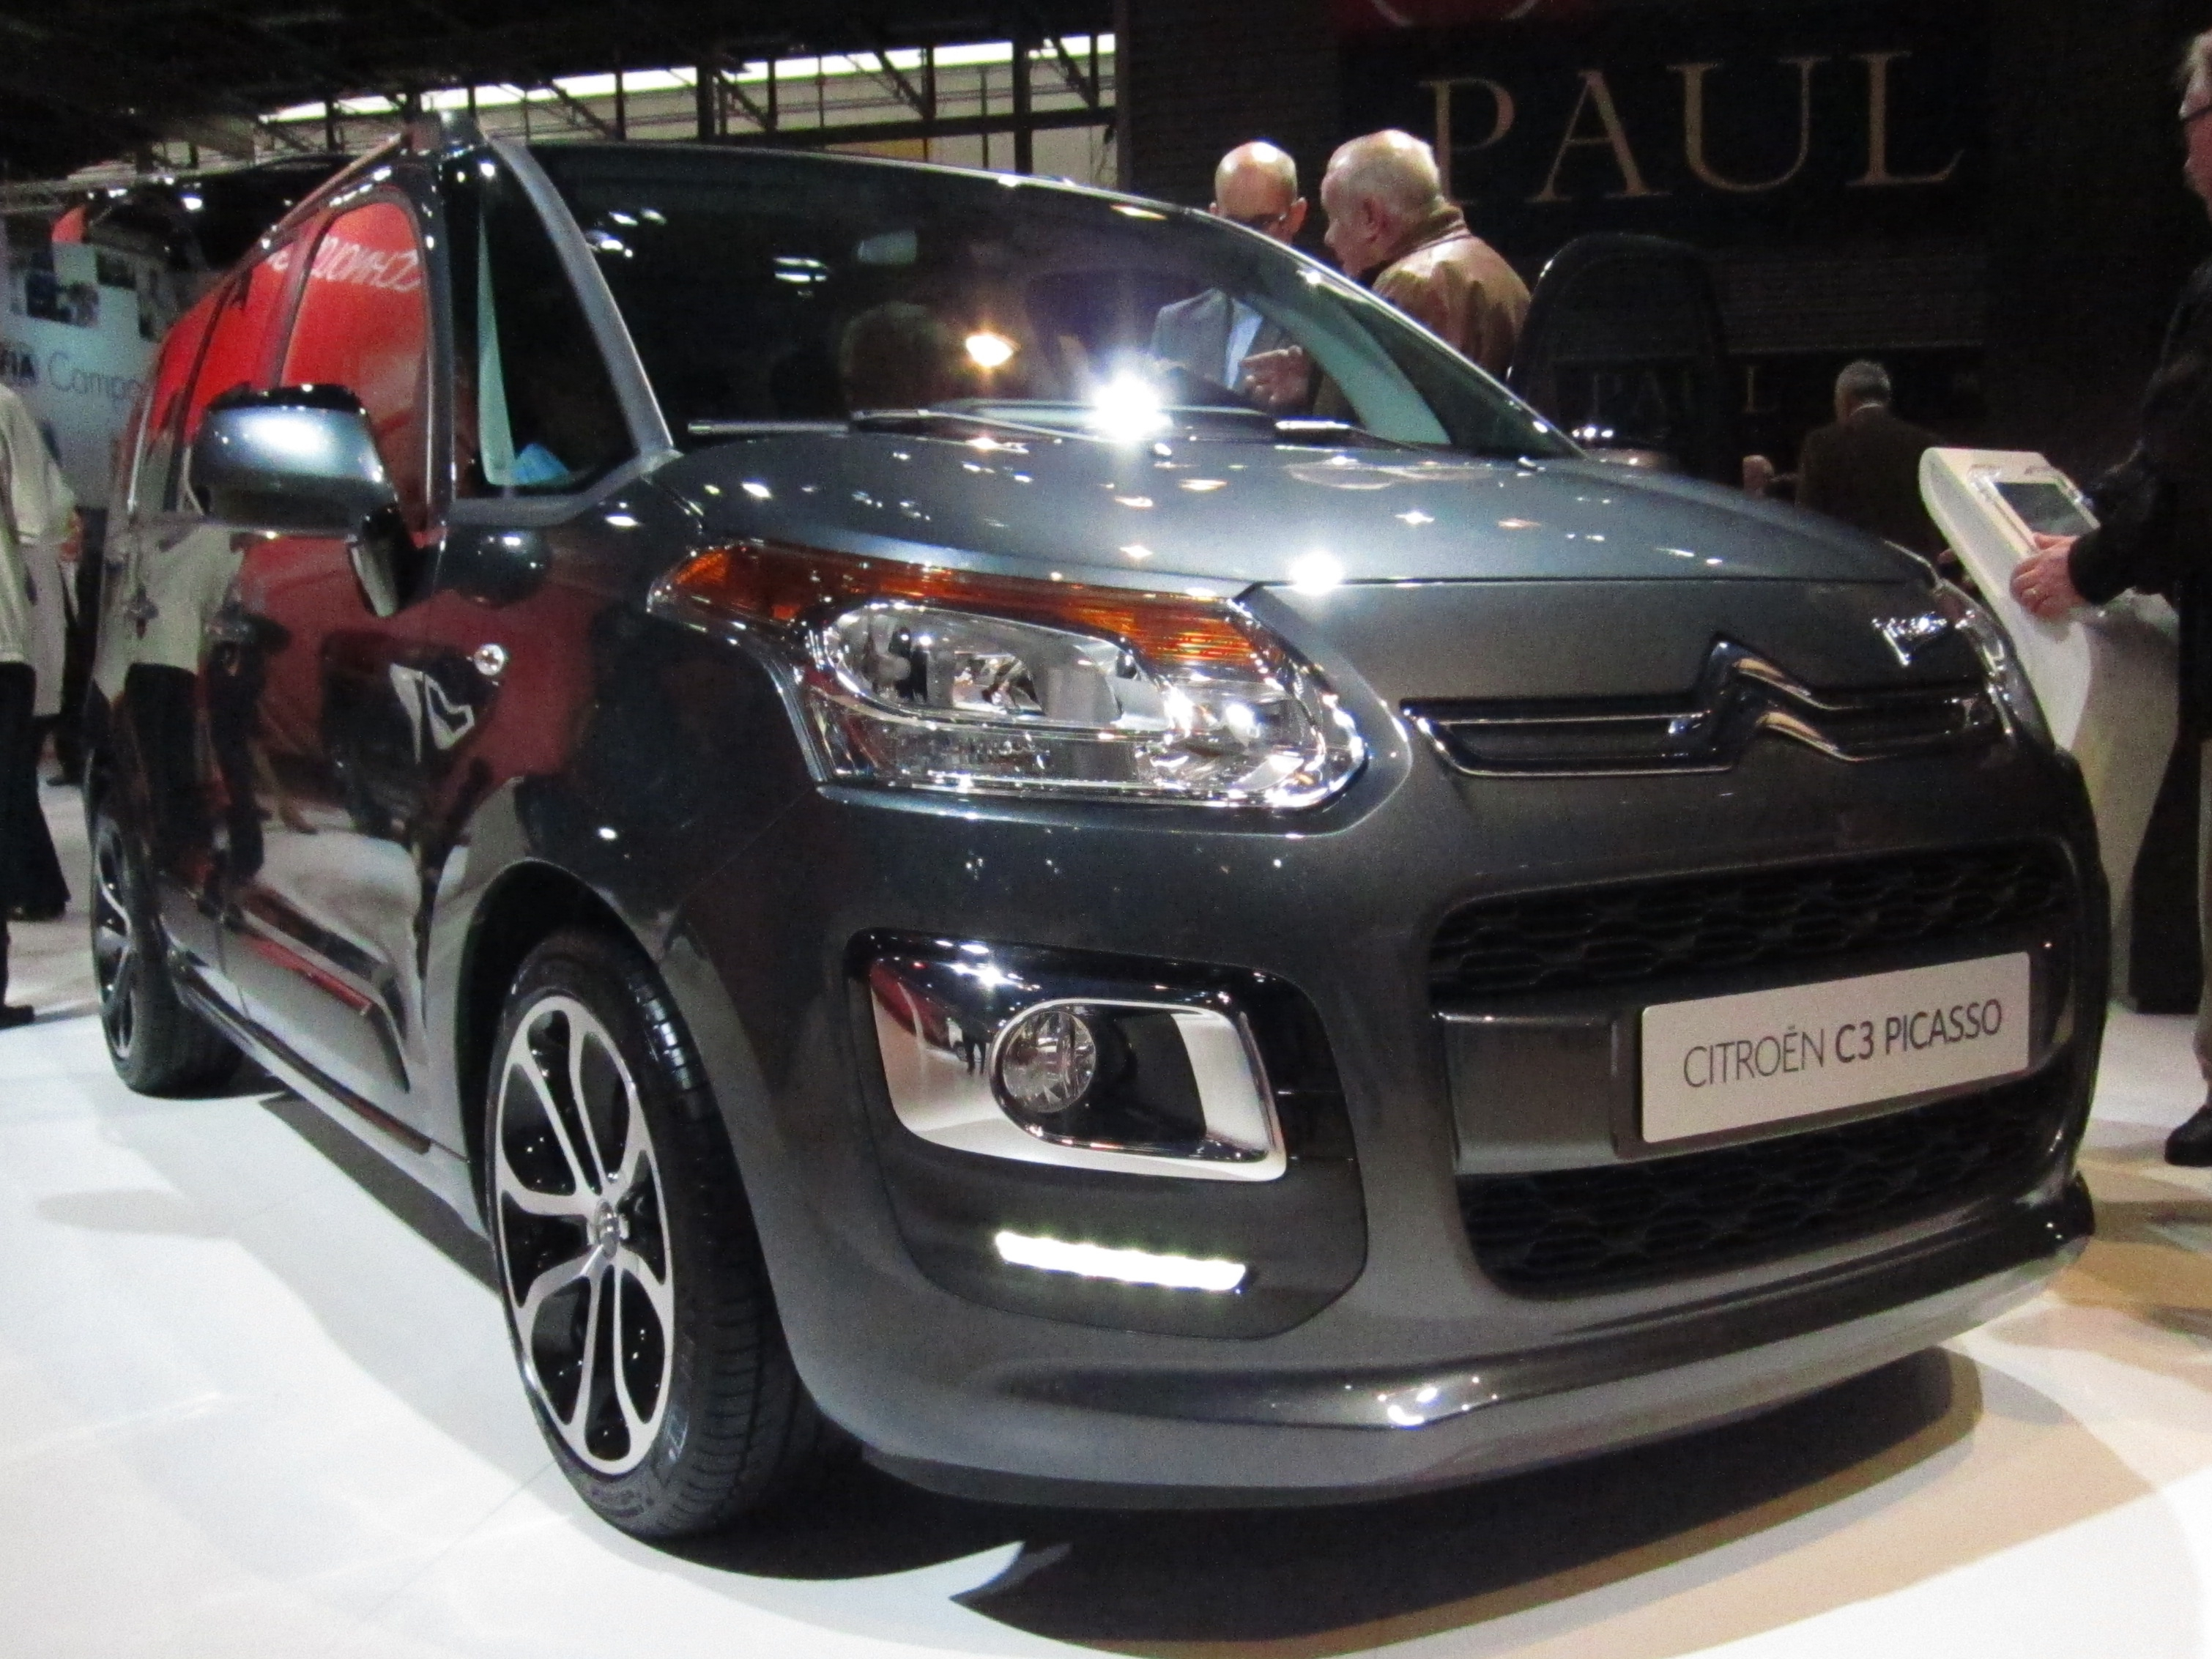 citroen wallpaper (Citroen C3 Picasso)